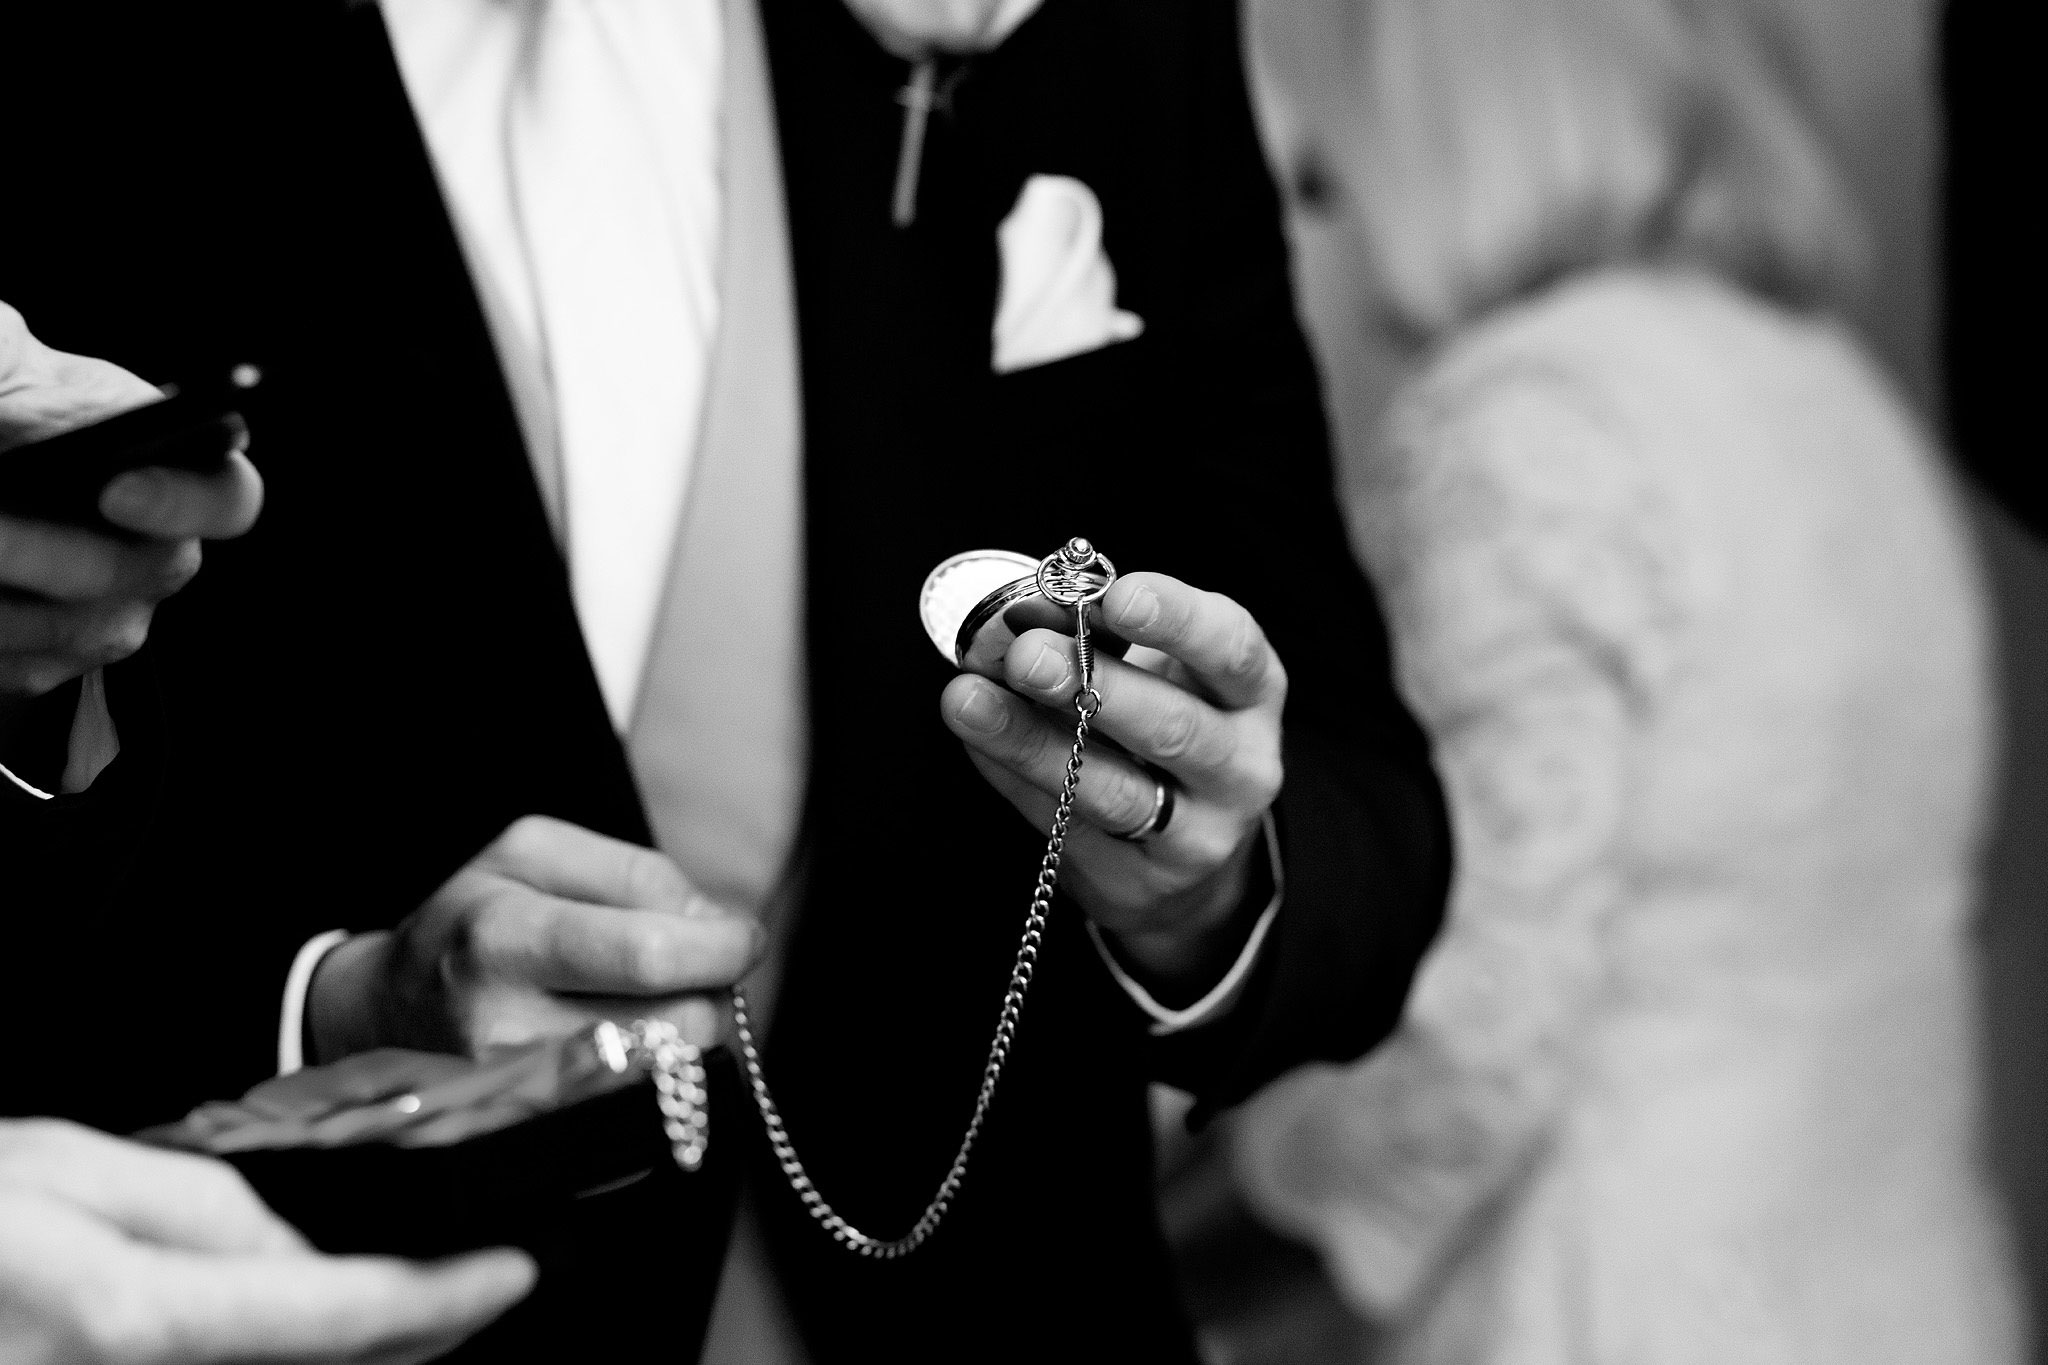 Black and white image of groom holding pocket watch